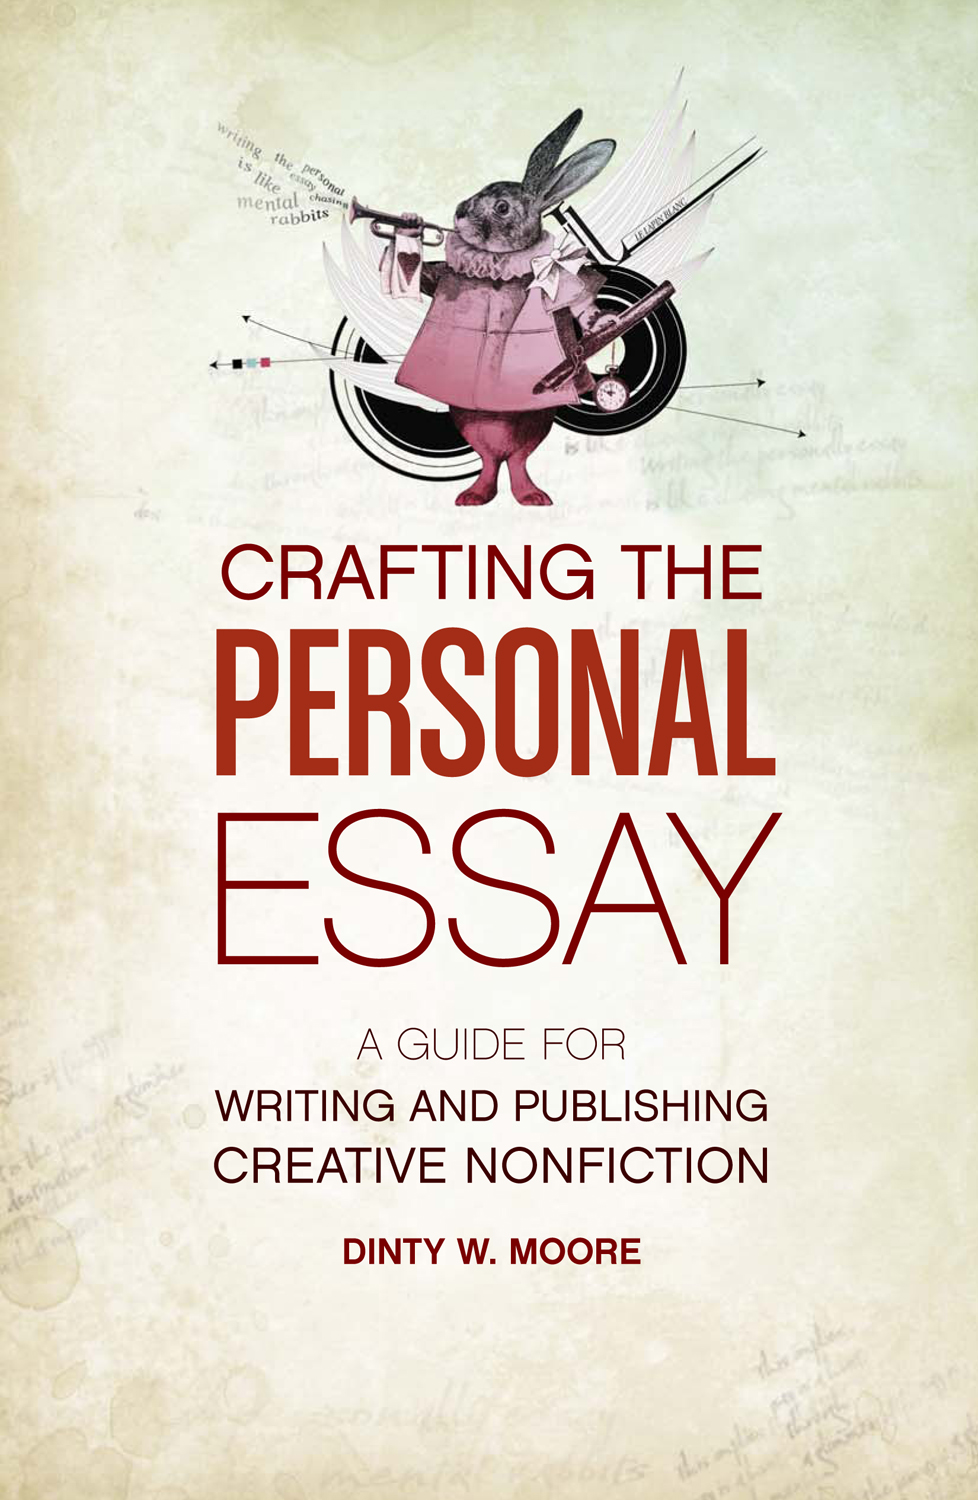 Crafting The Personal Essay: A Guide for Writing and Publishing Creative Non-Fiction By: Dinty W. Moore